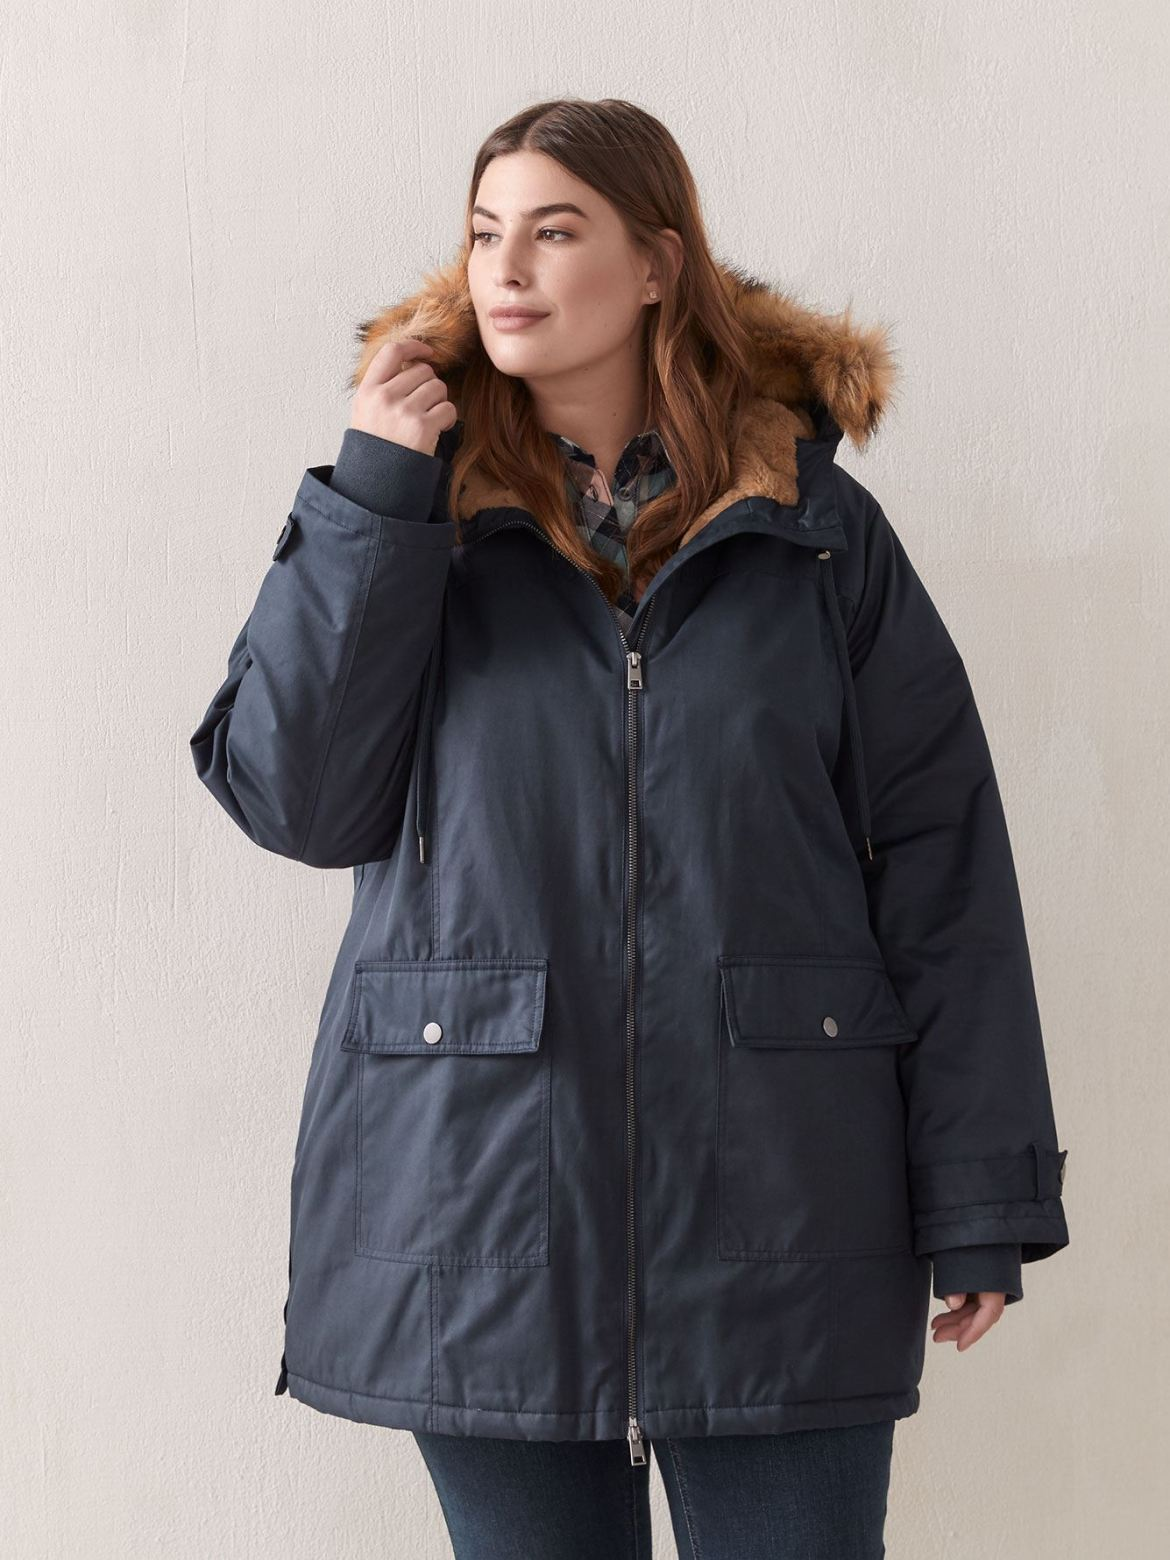 Parka Jacket With Fur Hood - In Every Story